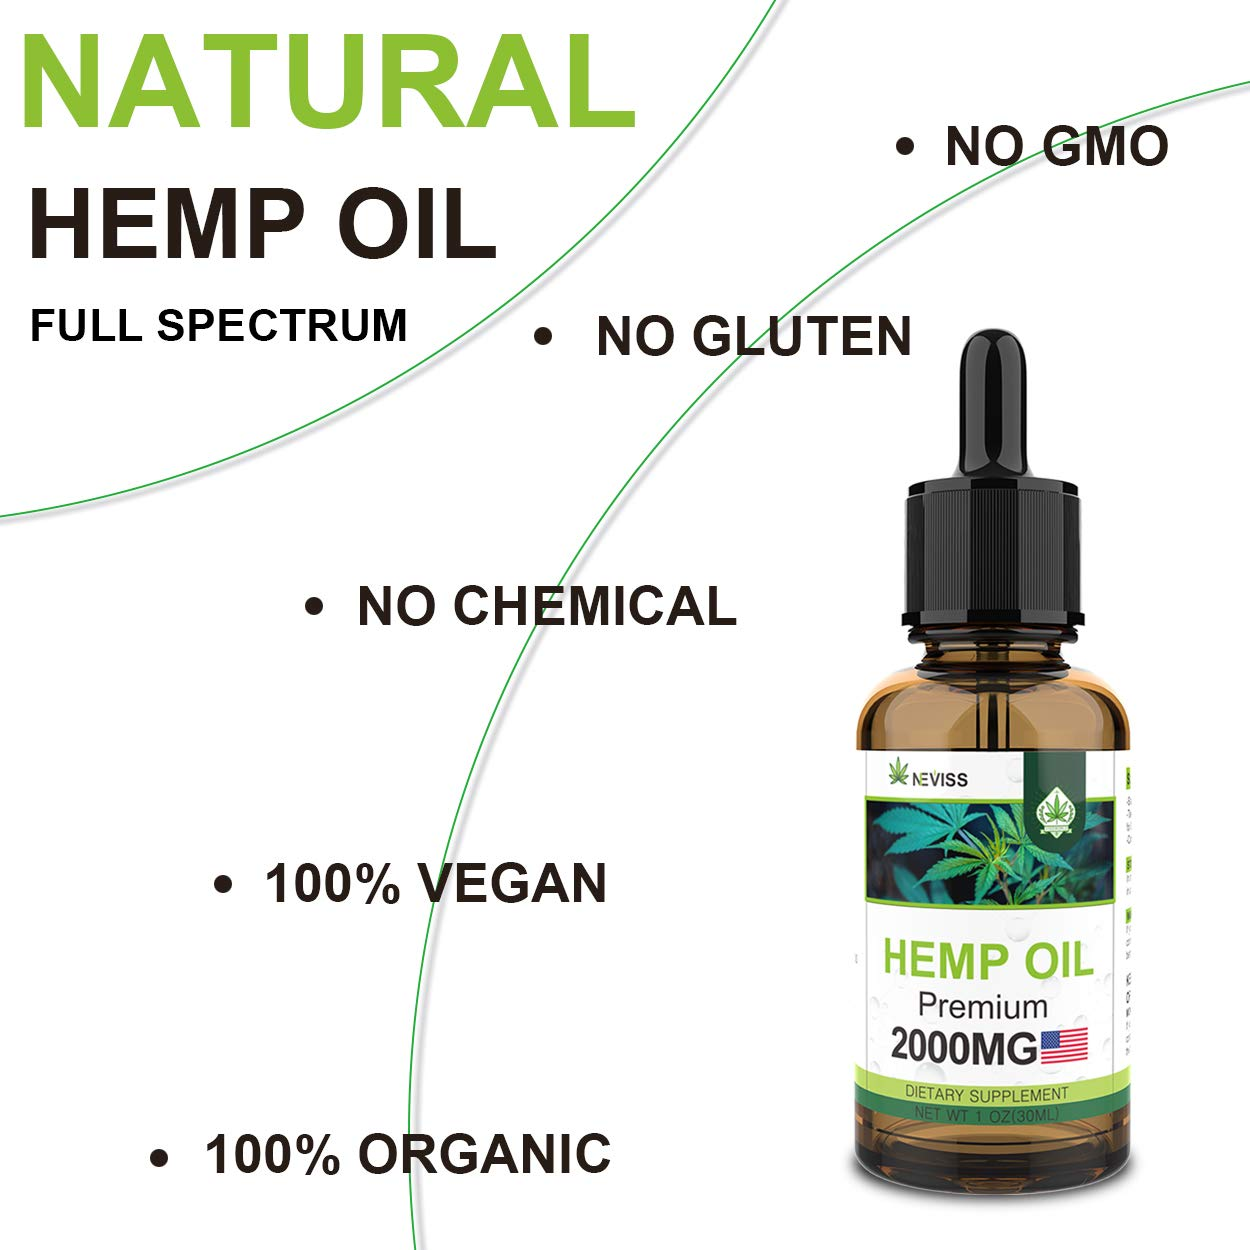 (2 Pack) Hemp Oil 2000mg for Relieve Pain, Stress & Anxiety Relief, Improve Sleep - Organic Hemp Herbal Oil, 100% Natural Hemp Herbal Extract - Made in USA